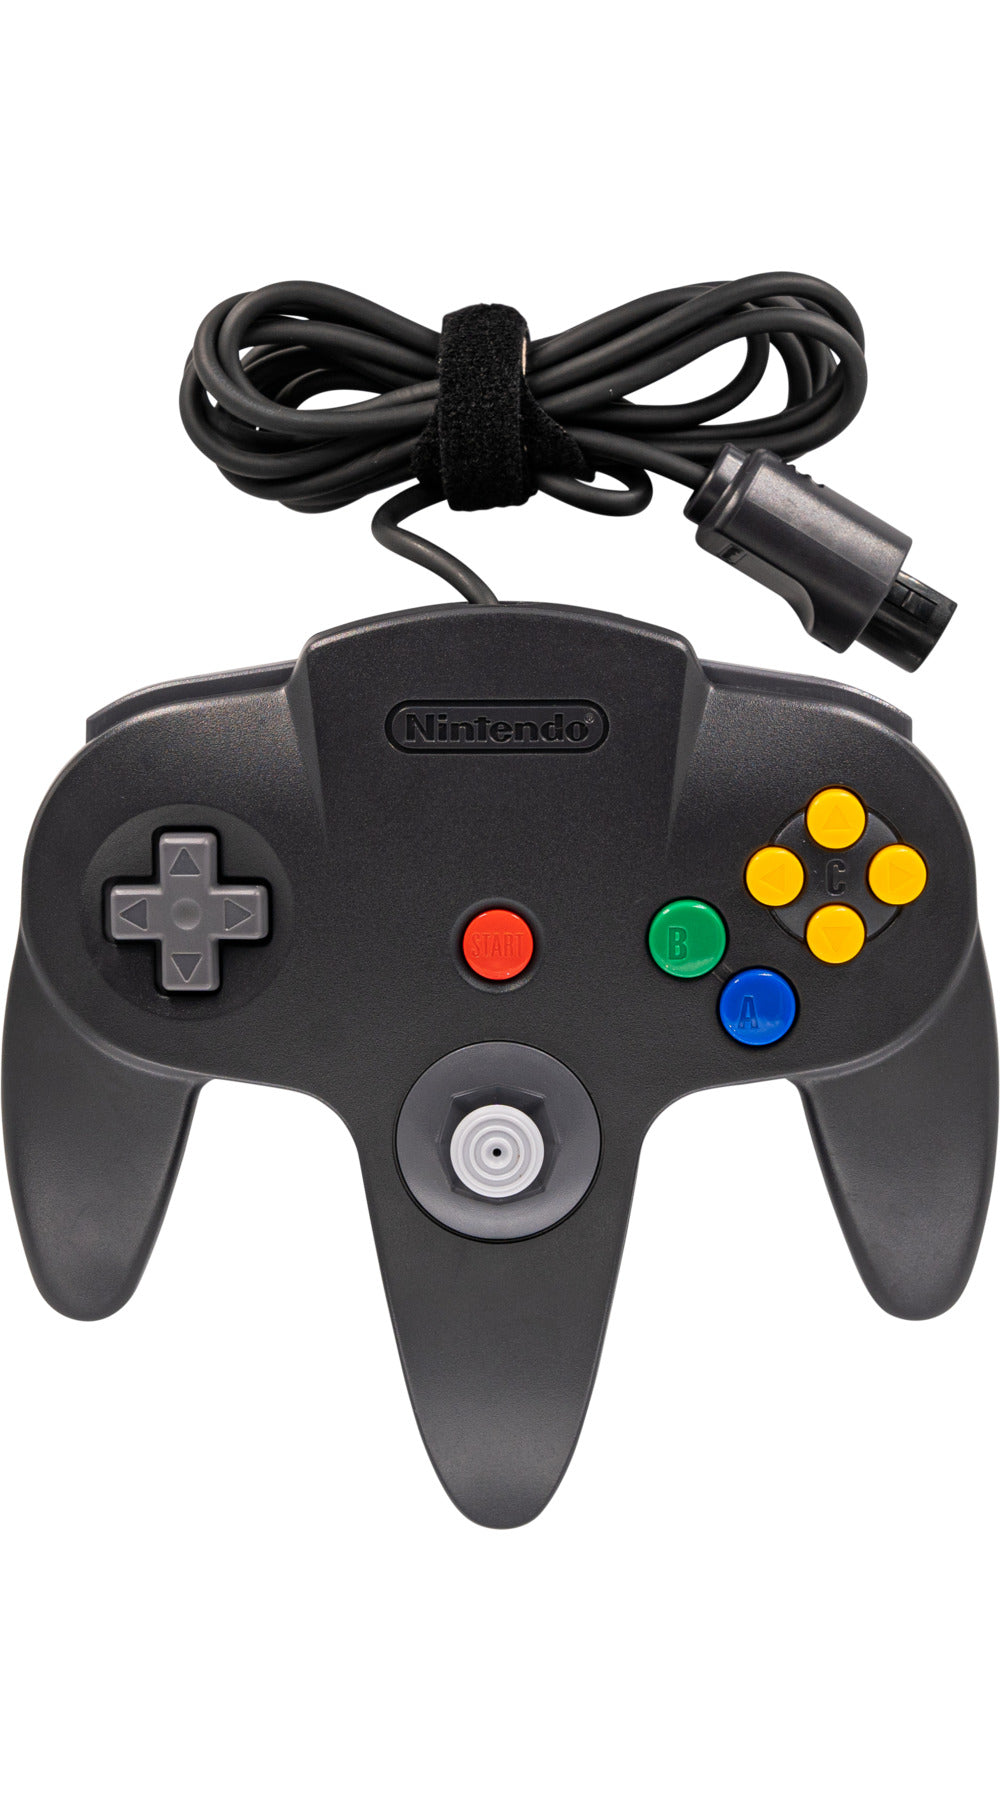 Nintendo N64 Controller Original Black - Video Game Delivery